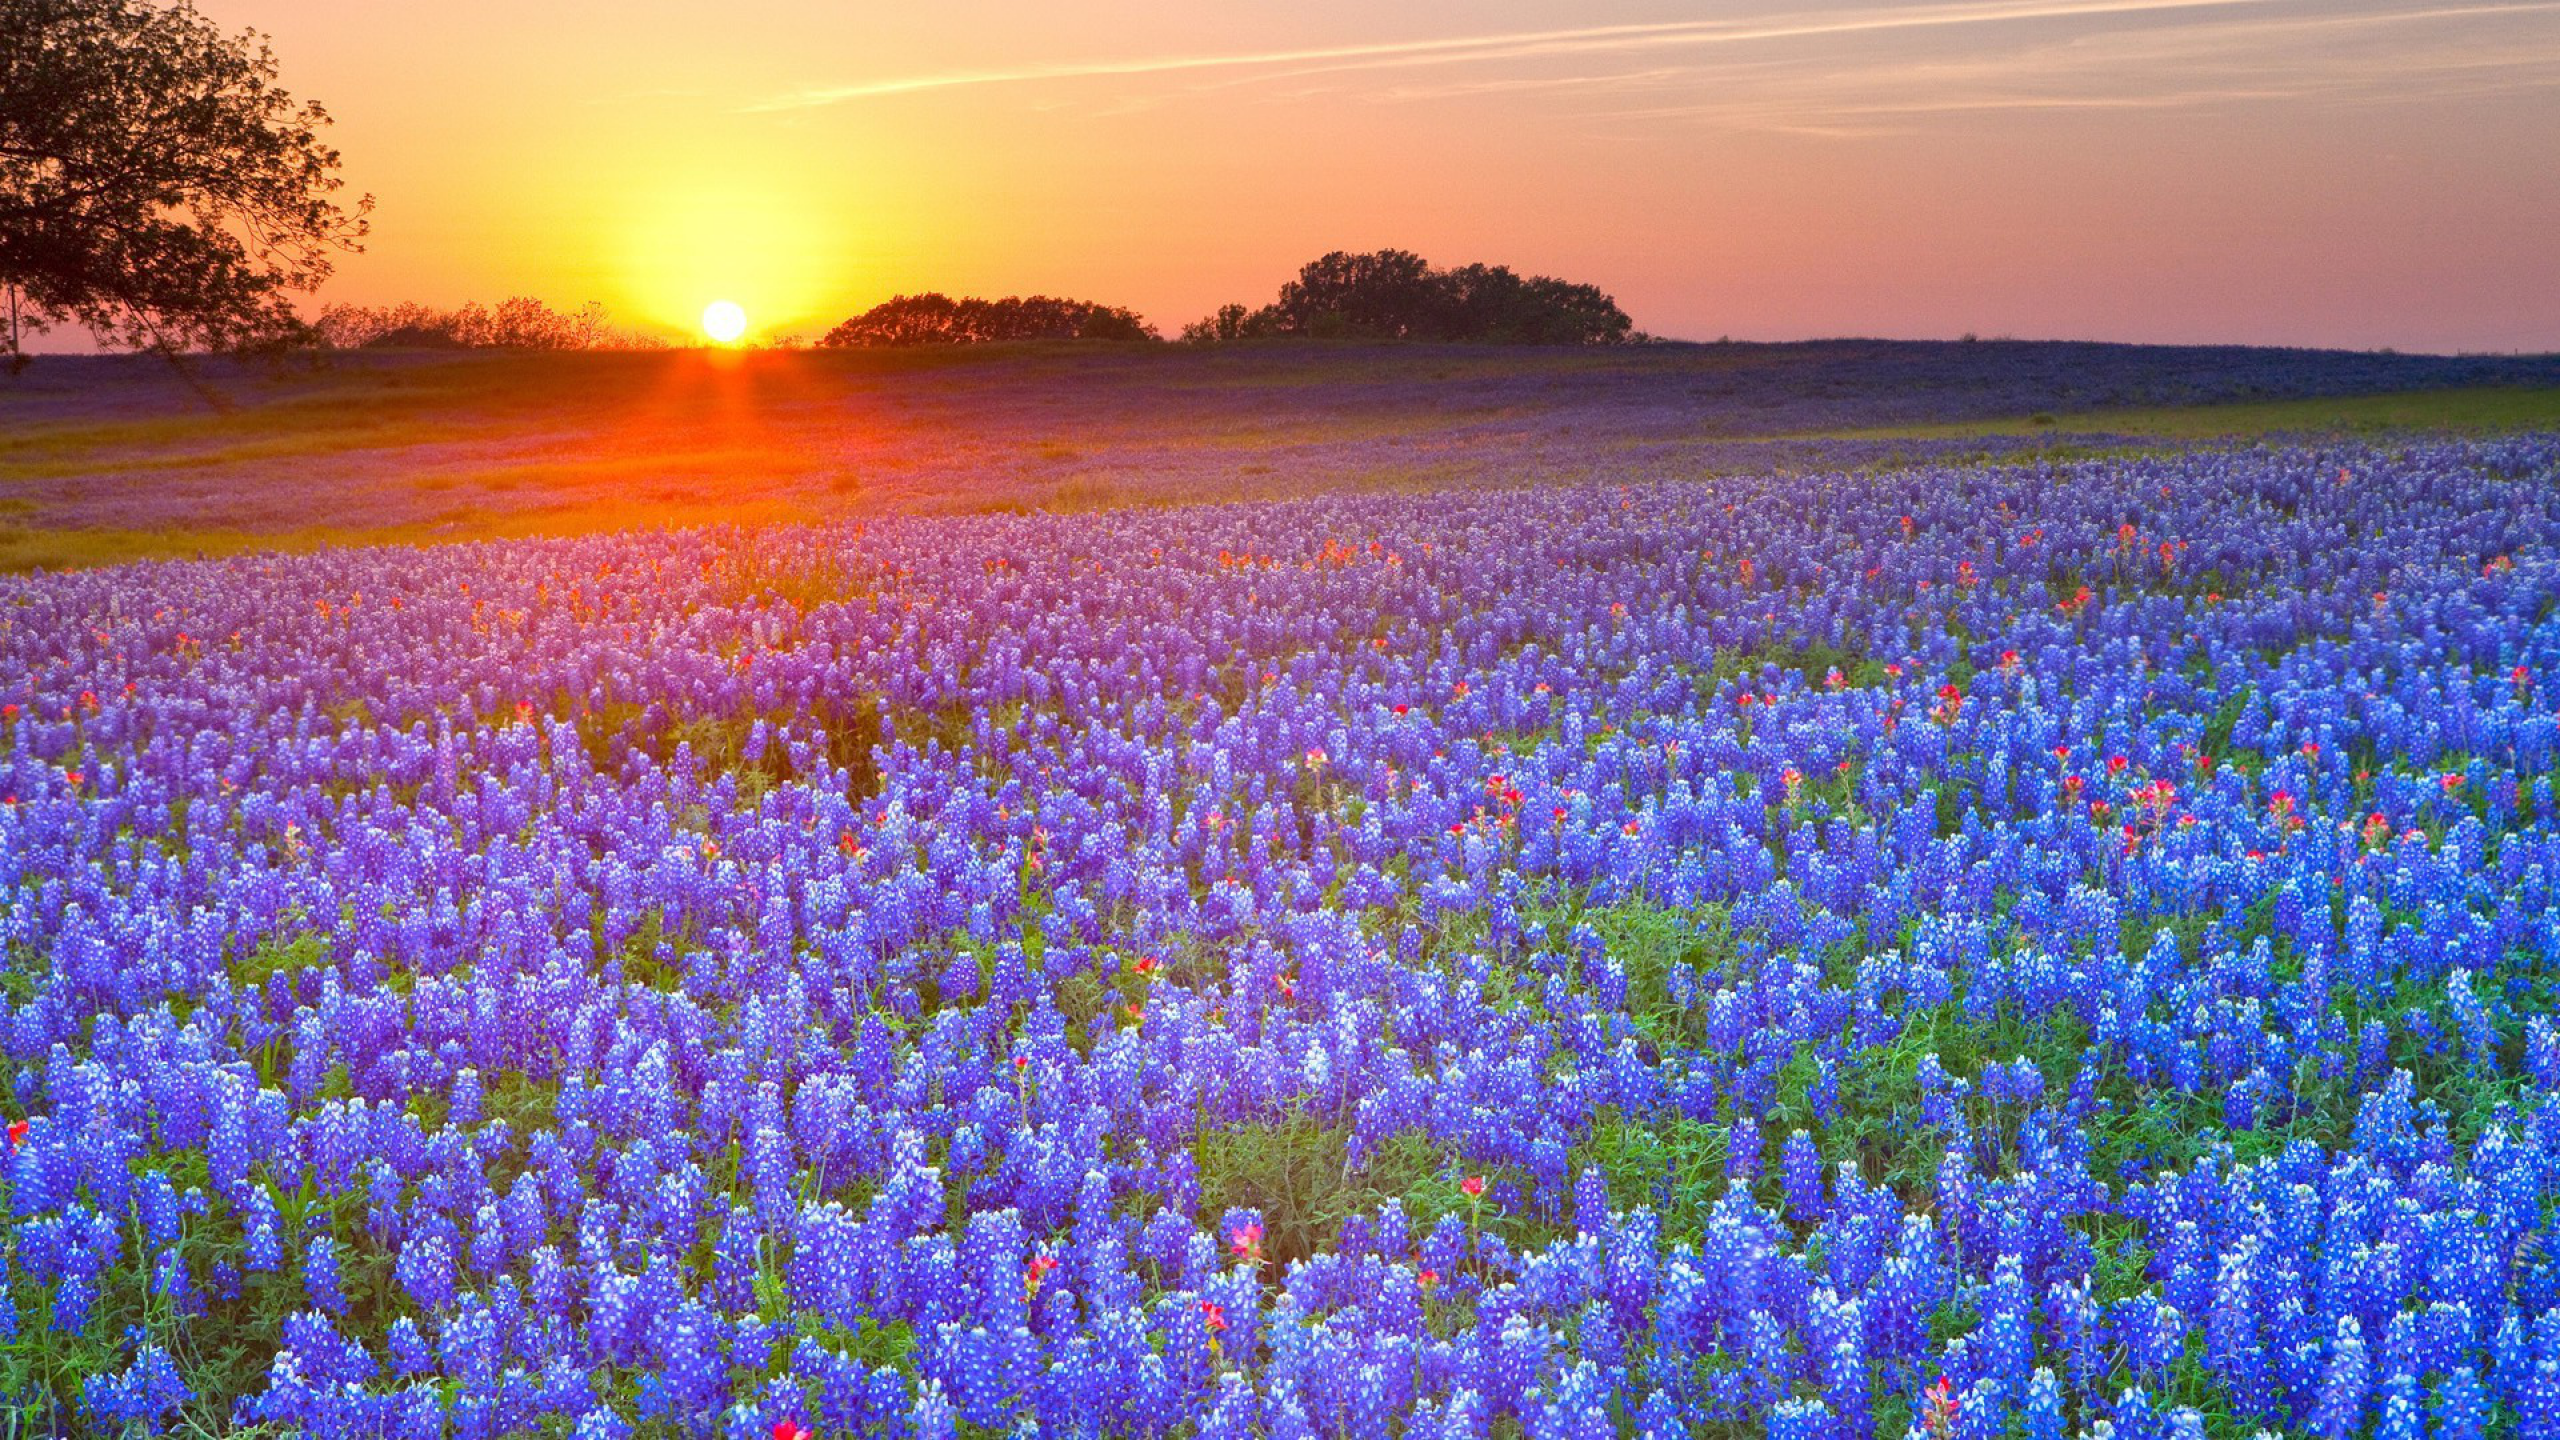 5 Texas Bluebonnets HD Wallpapers Background Images   Wallpaper 2560x1440